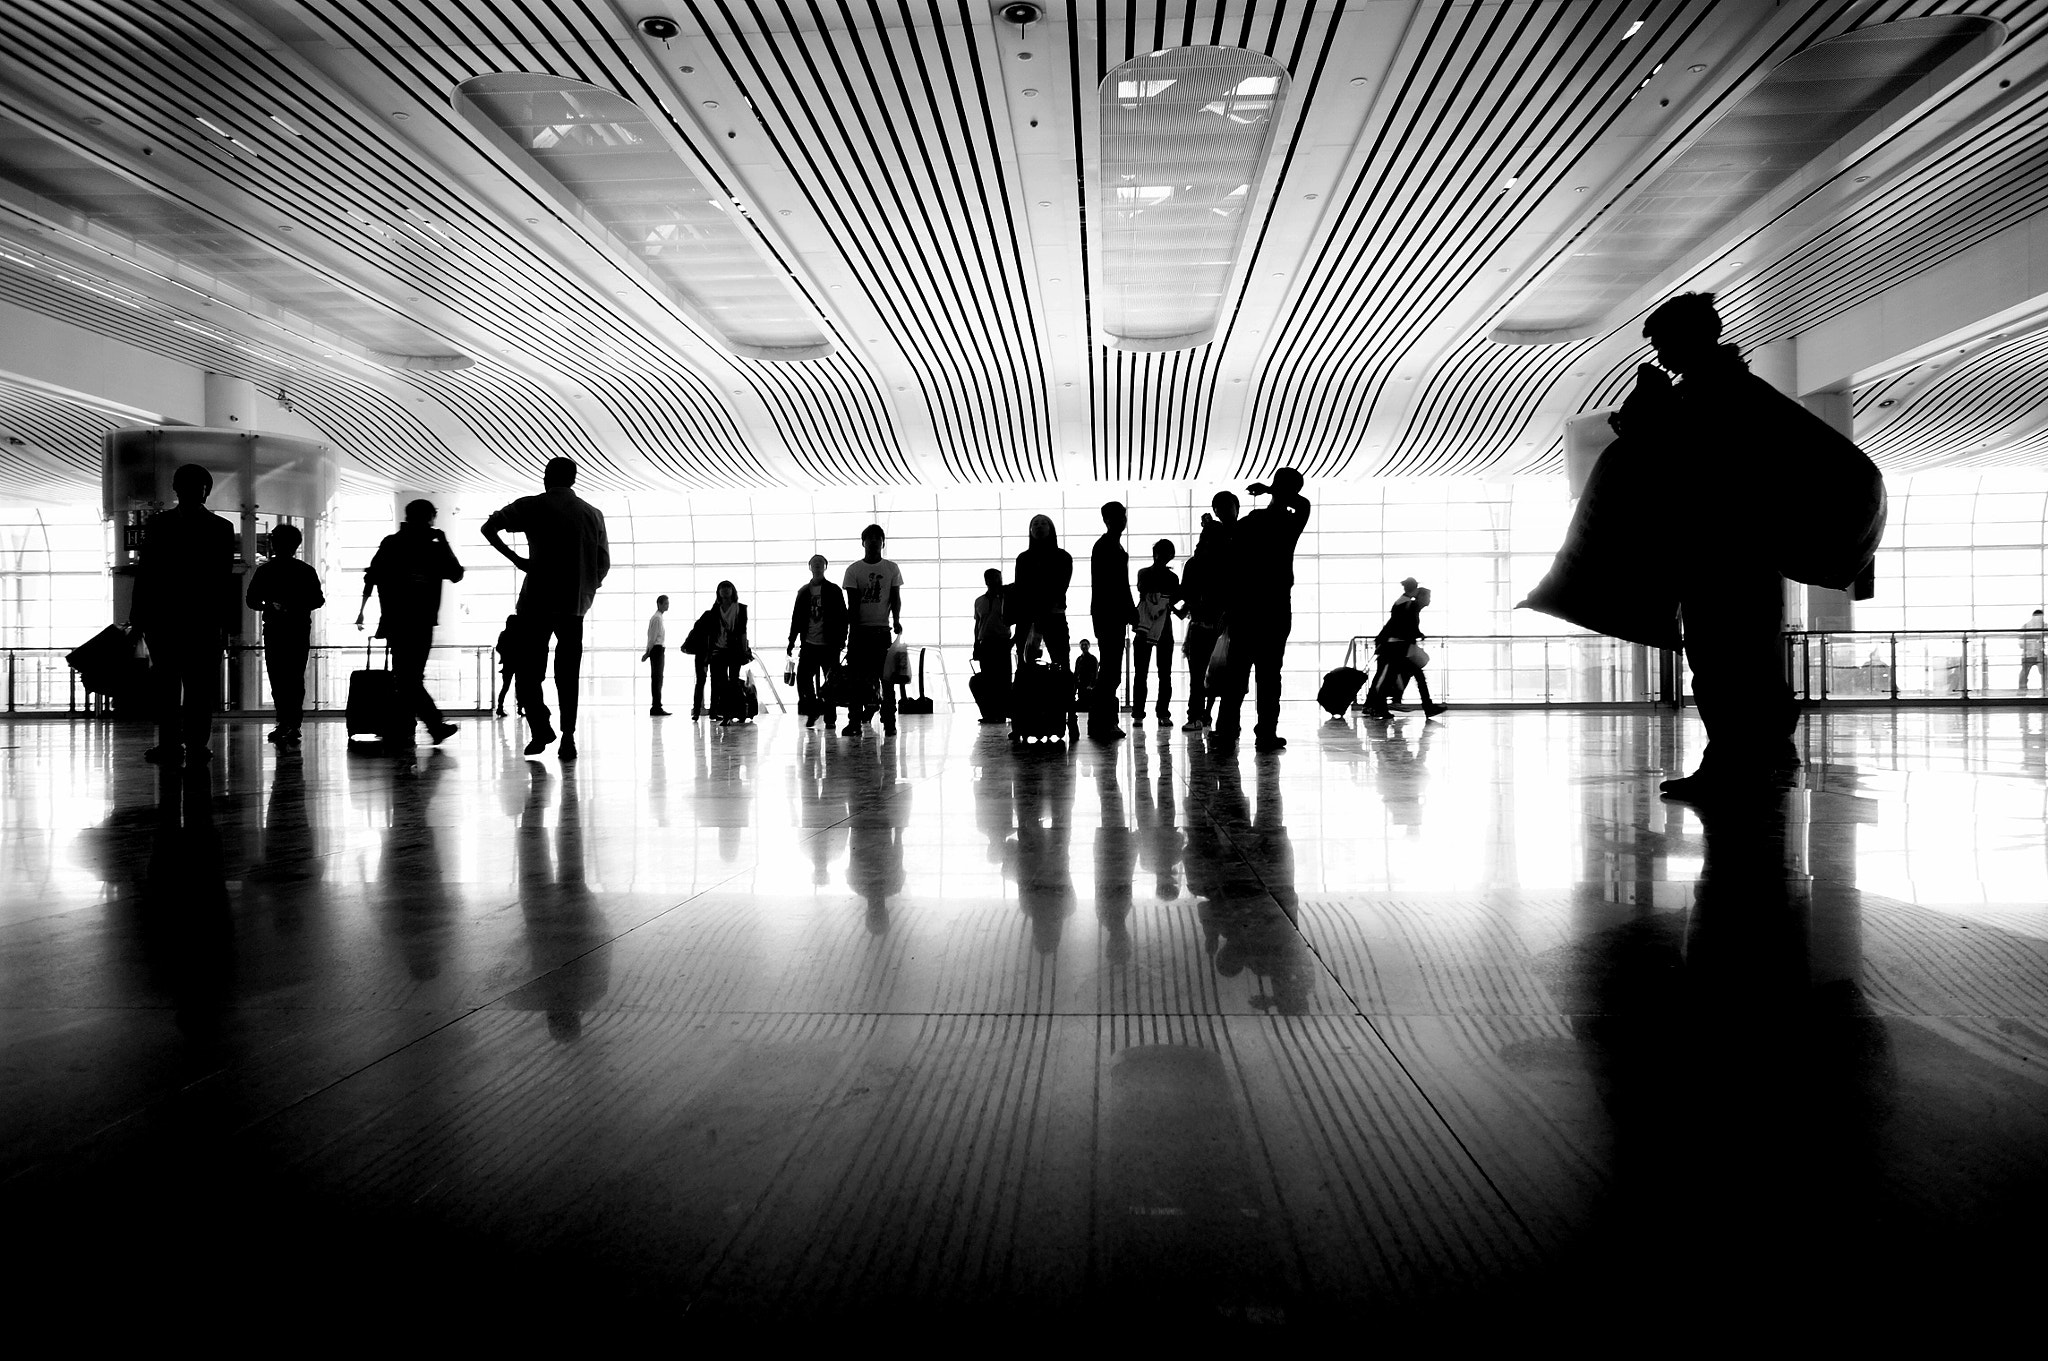 Photograph ShangHai Railway Station by Lan Hsu on 500px